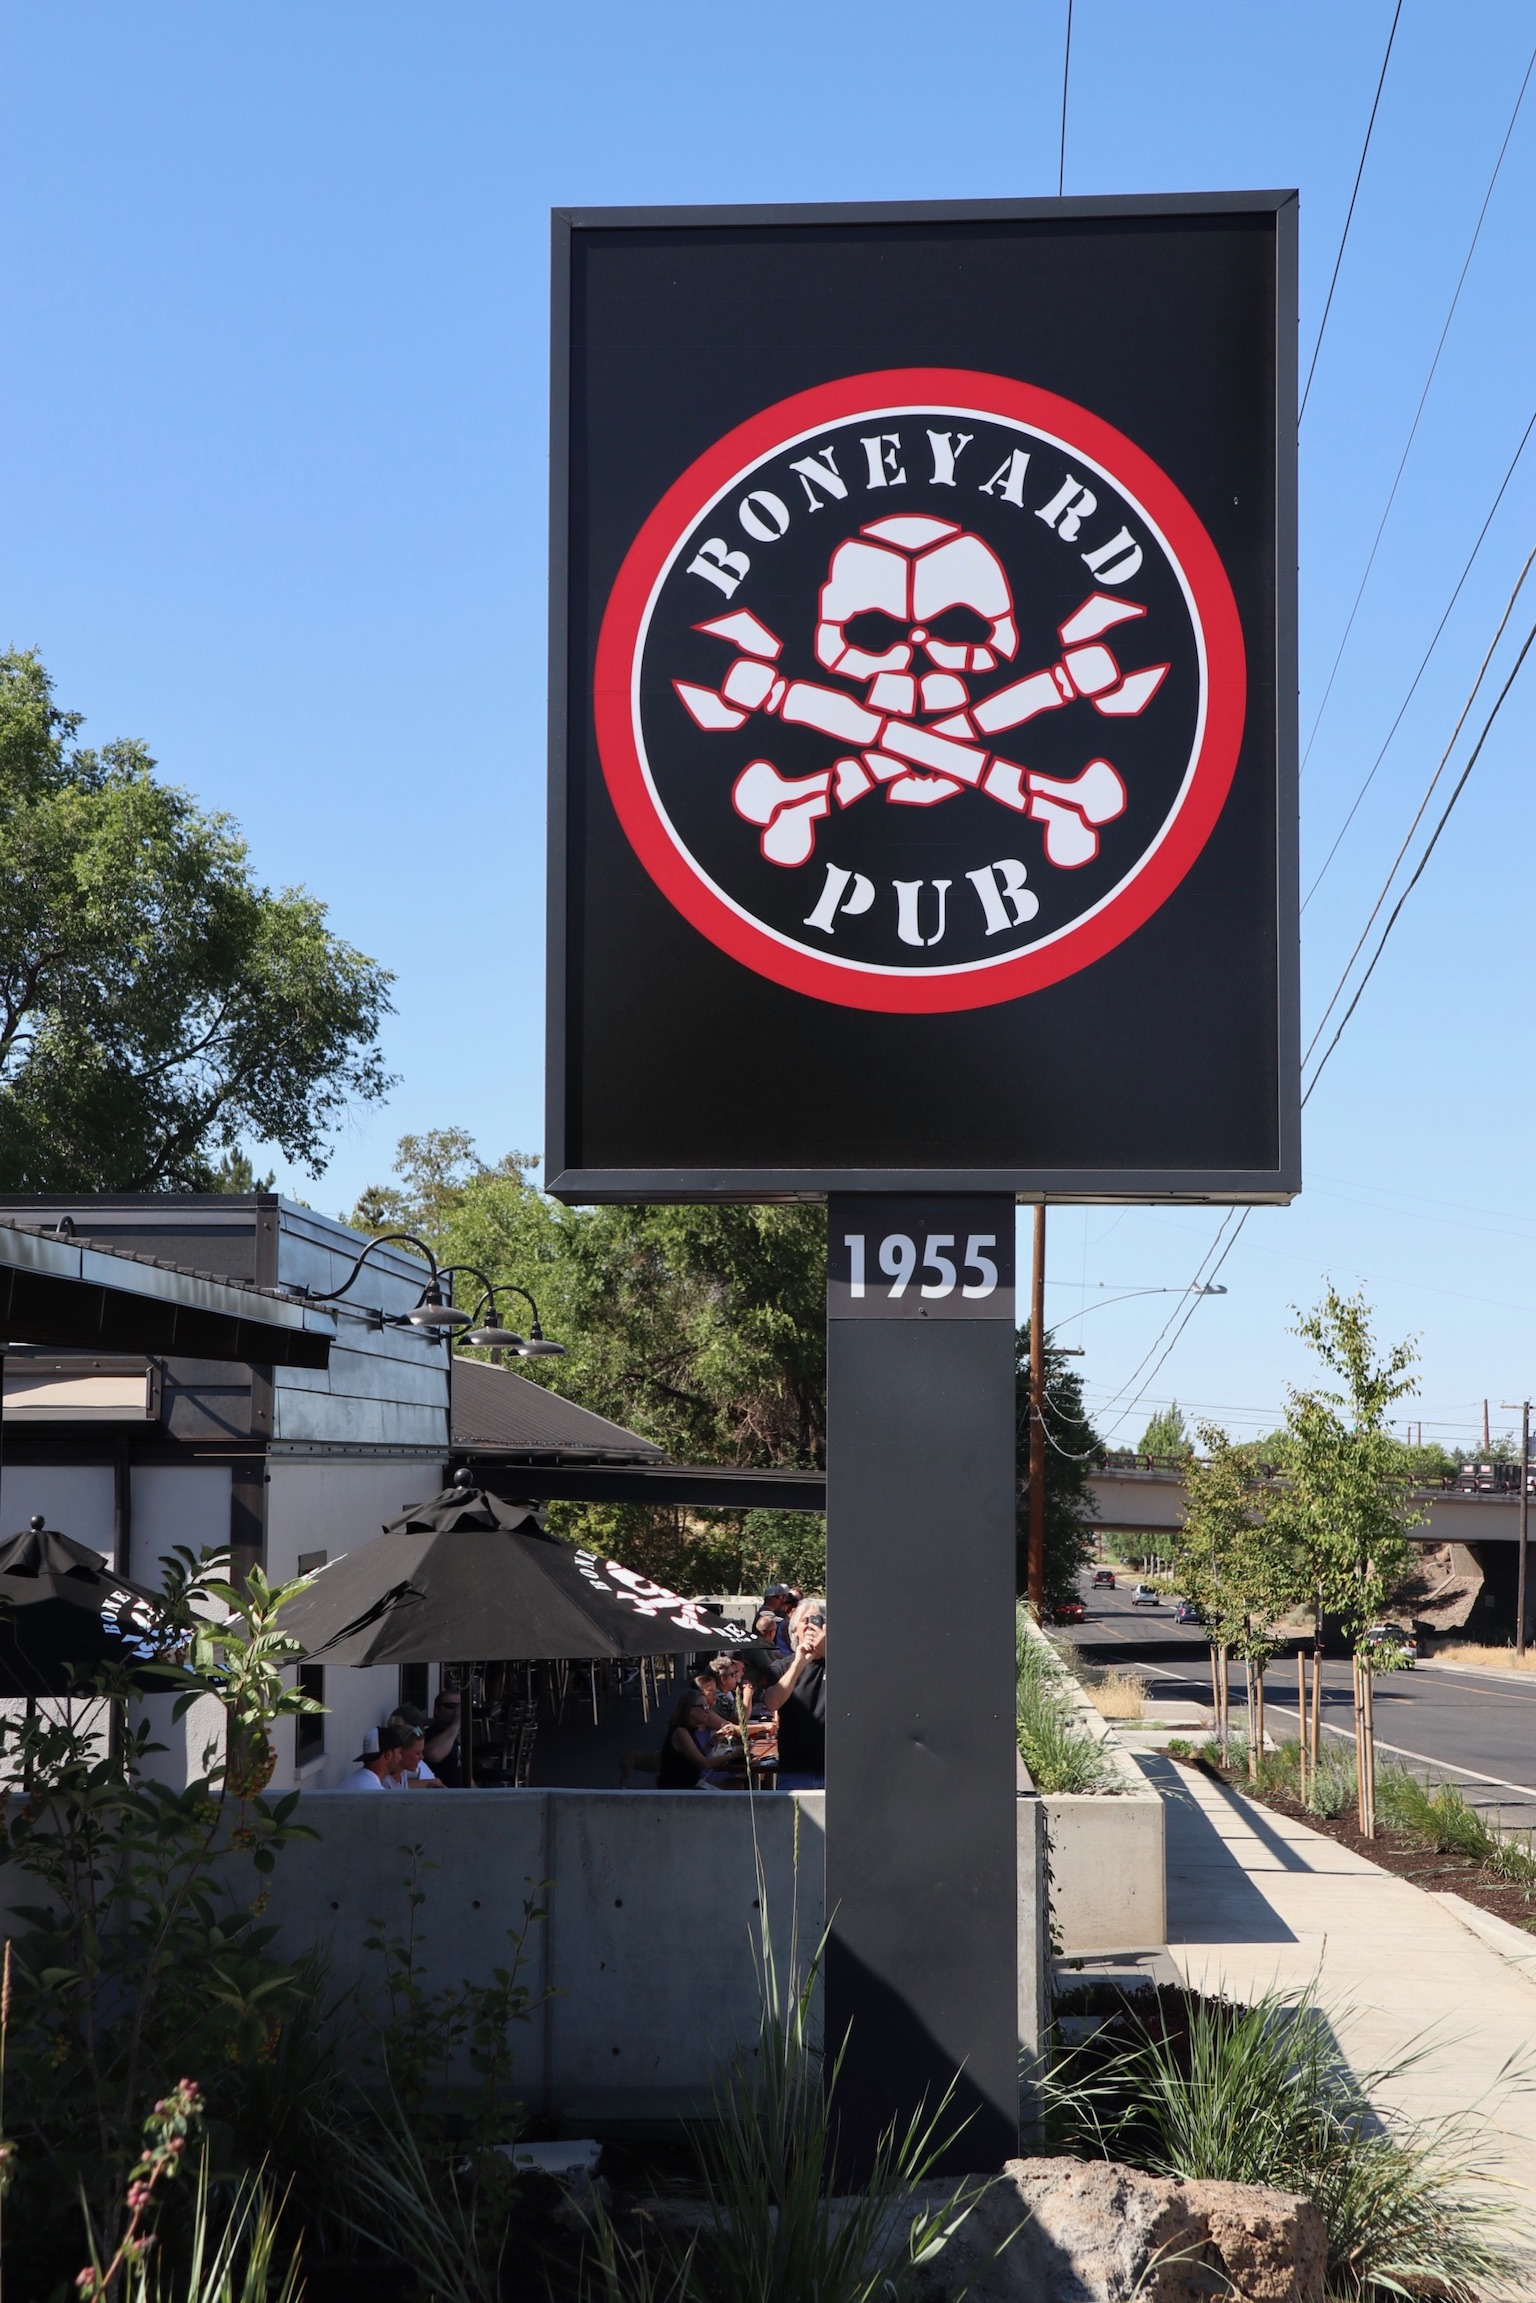 Boneyard Pub sign. (photo by Cat Stelzer)